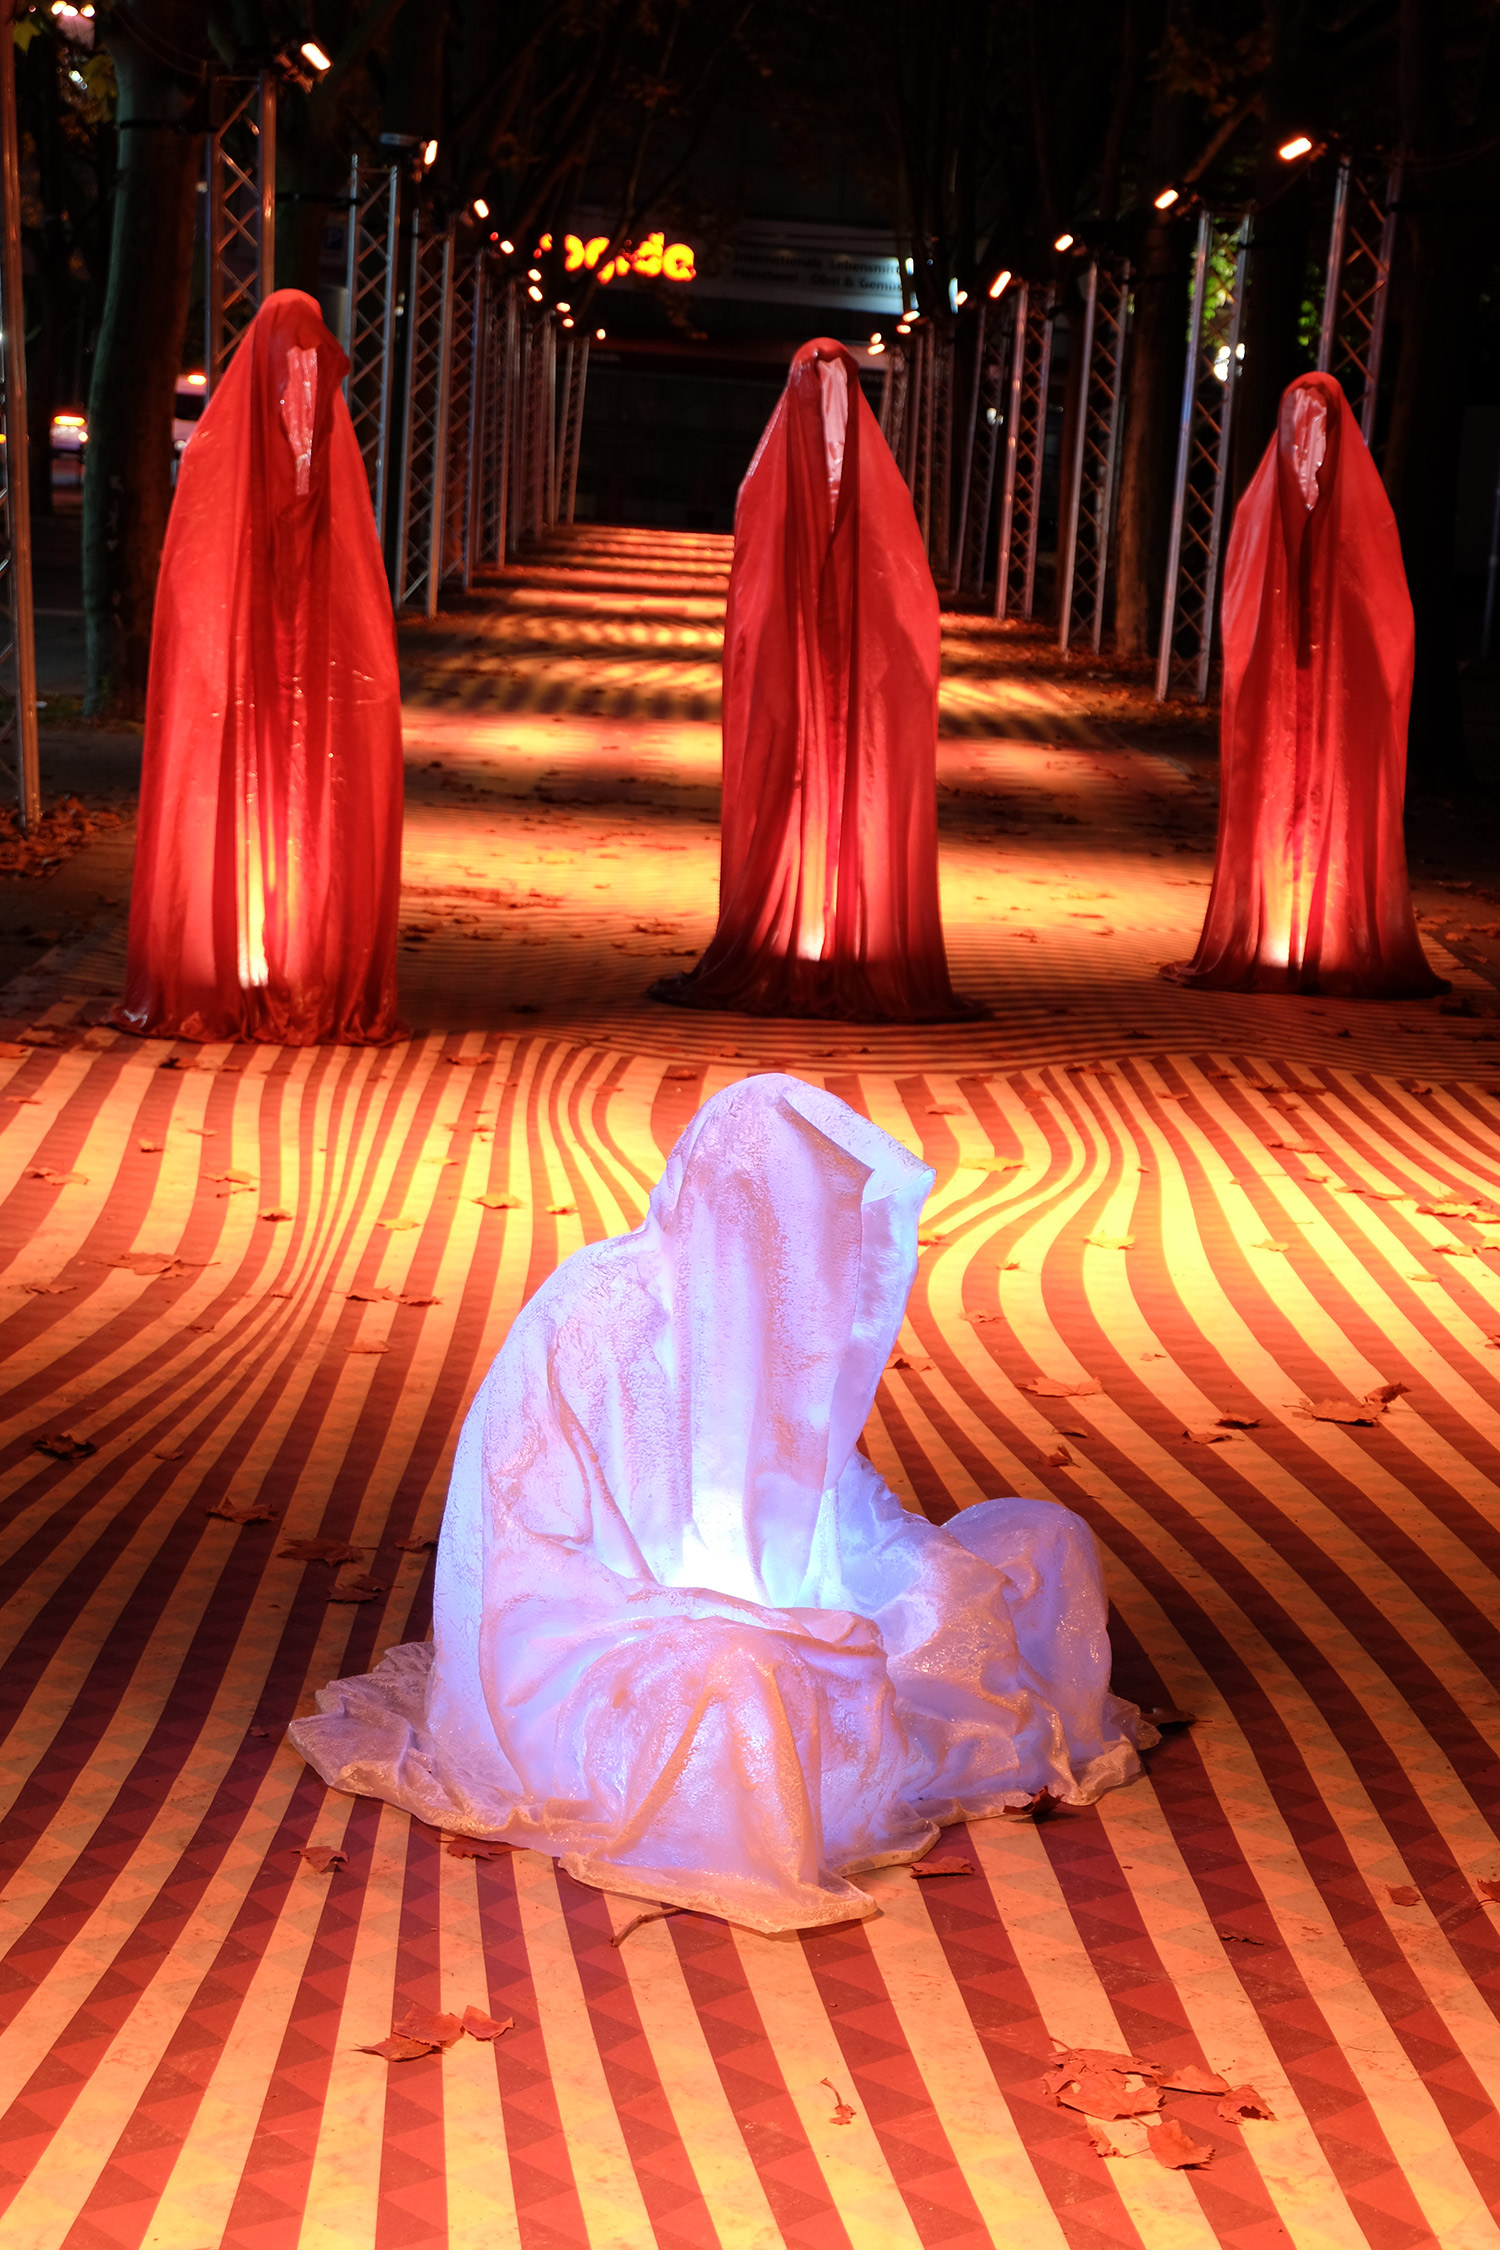 festival-of-lights-berlin-light-art-show-ilumination-lumina-glow-fine-art-modern-design-contemporary-sculpture-statue-ghost-faceless-9152